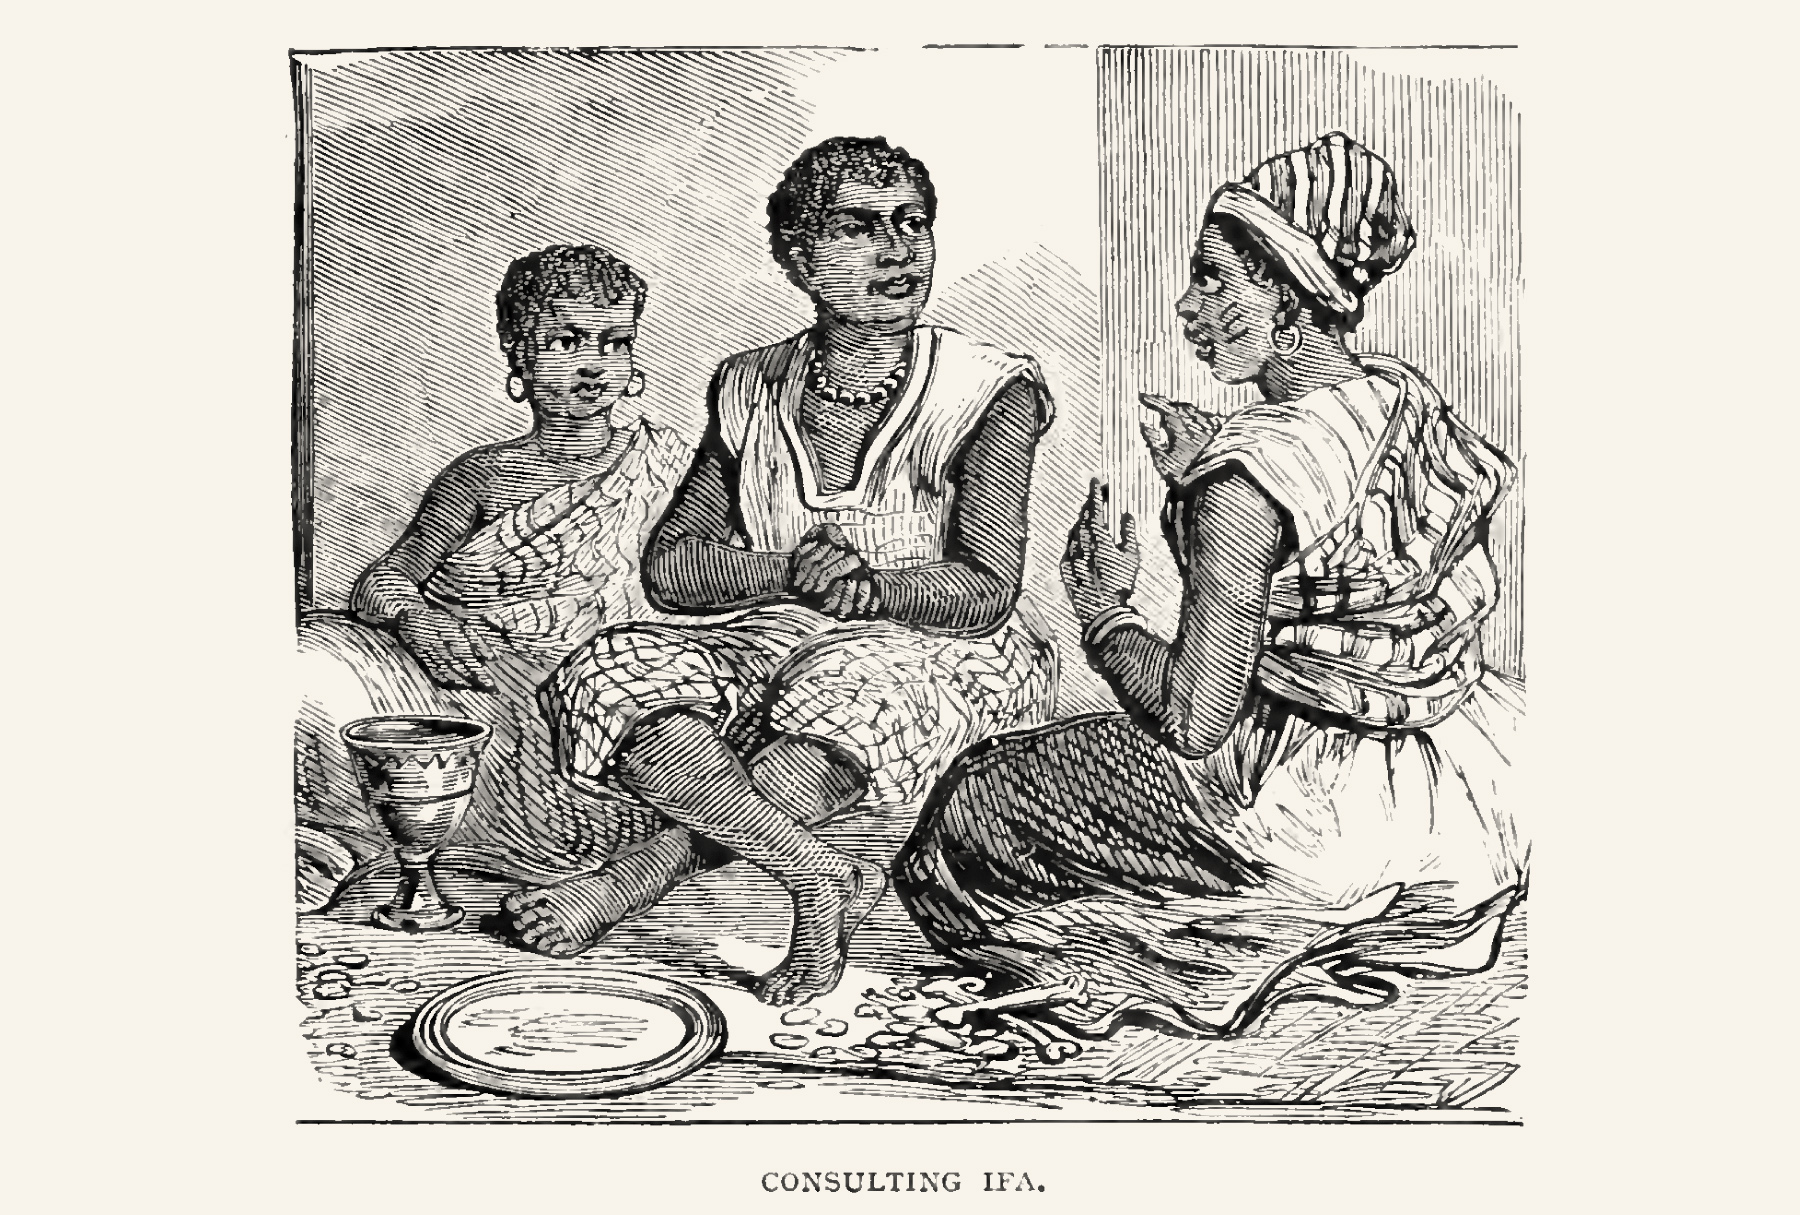 The Babaláwo consulting for his clients. Notice the Ọpọ́n Ifáwith ìyẹ̀rẹ̀ osùn and some lines that could be Odù markings.The bones and small objects on the mat could be the ìbò, small tools for the detailed interpretation. The Babaláwo has also scarification marks on his cheeks.